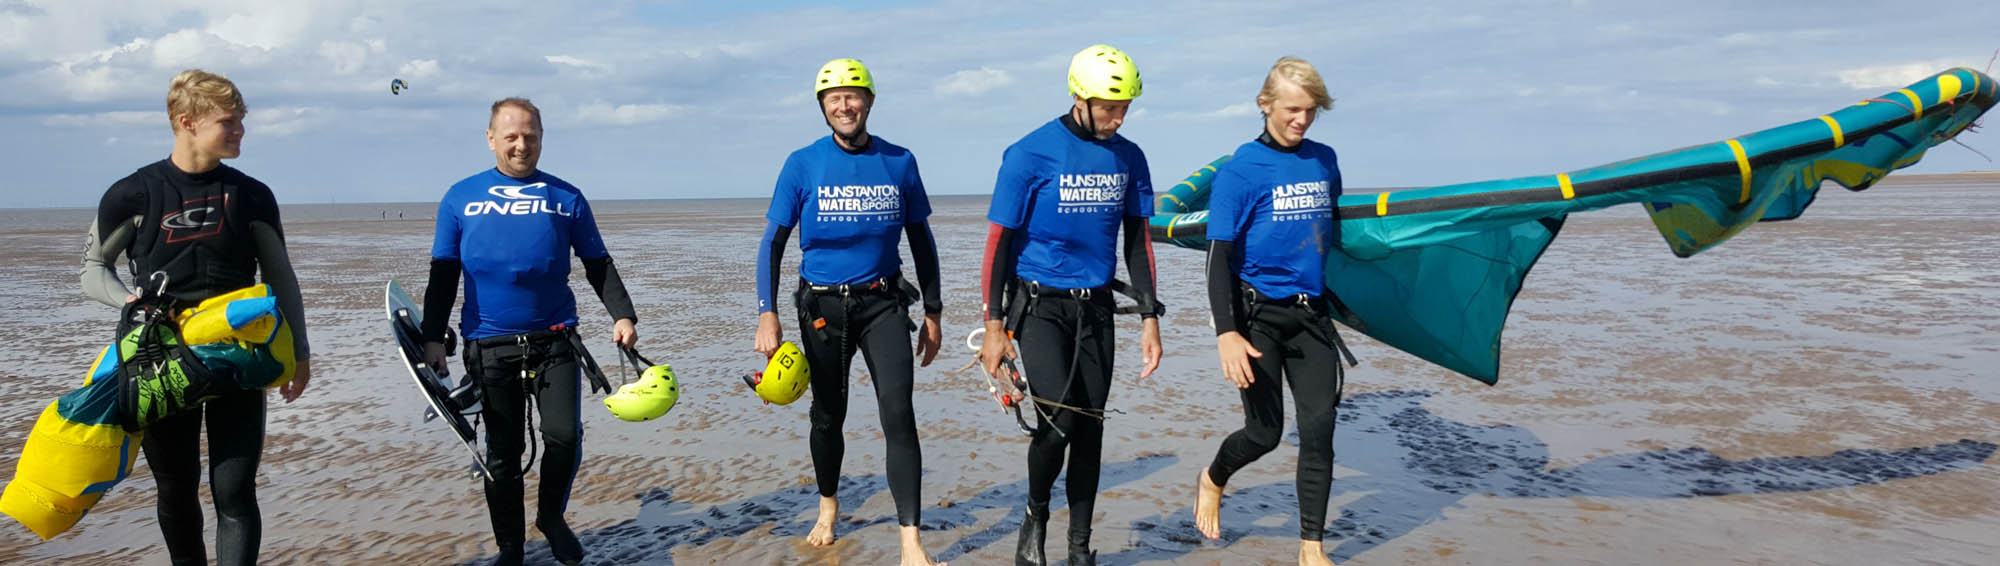 Kitesurfing tuition in Hunstanton